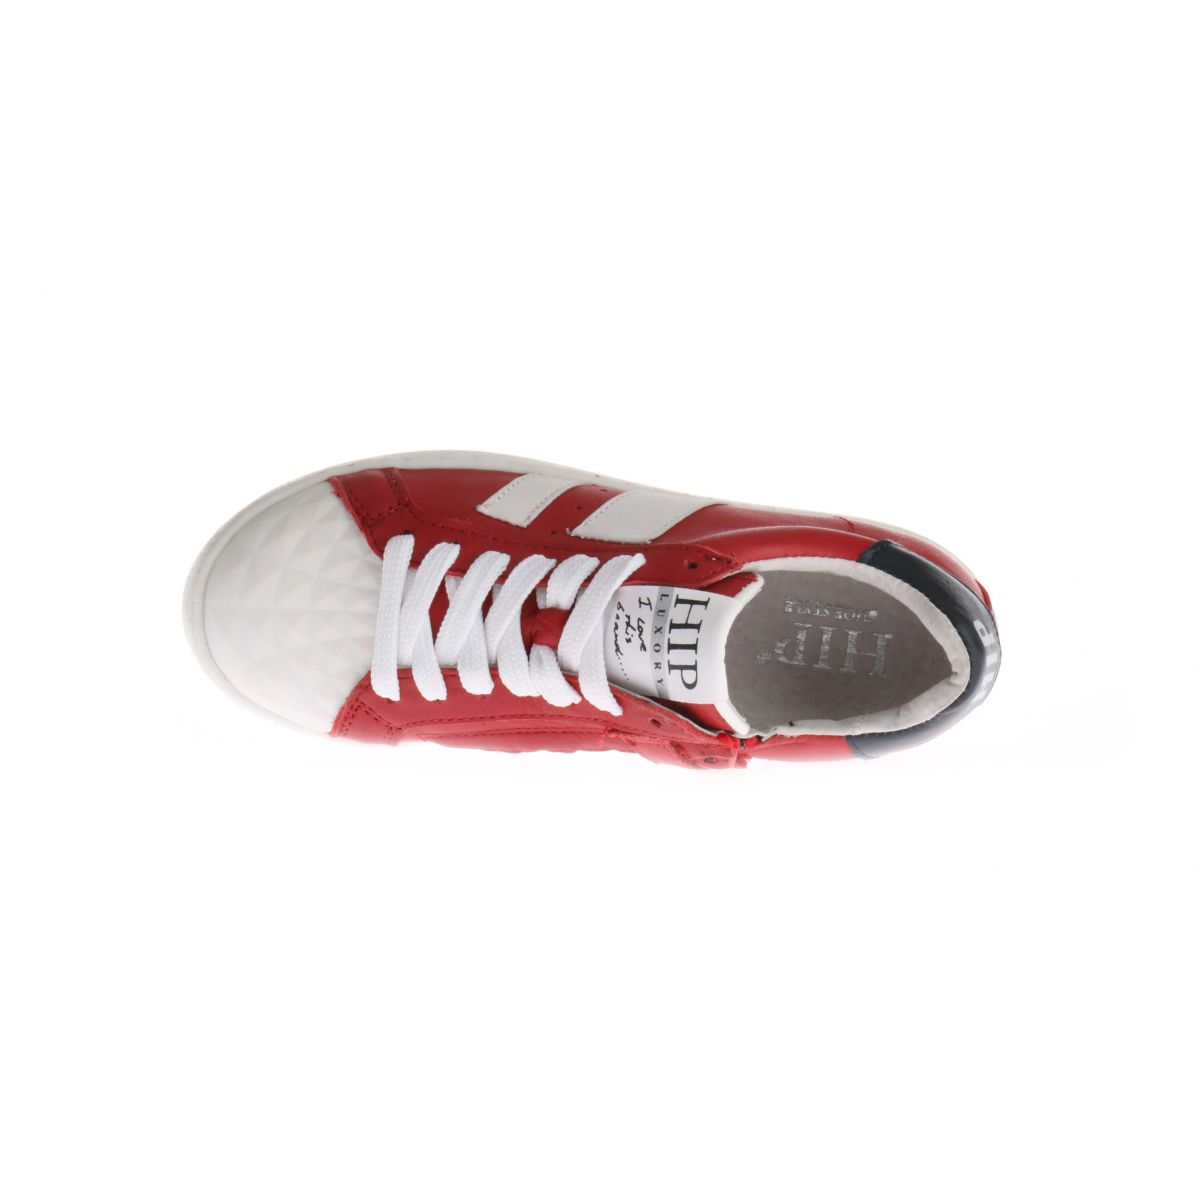 HIP H1732 Sneakers Rood